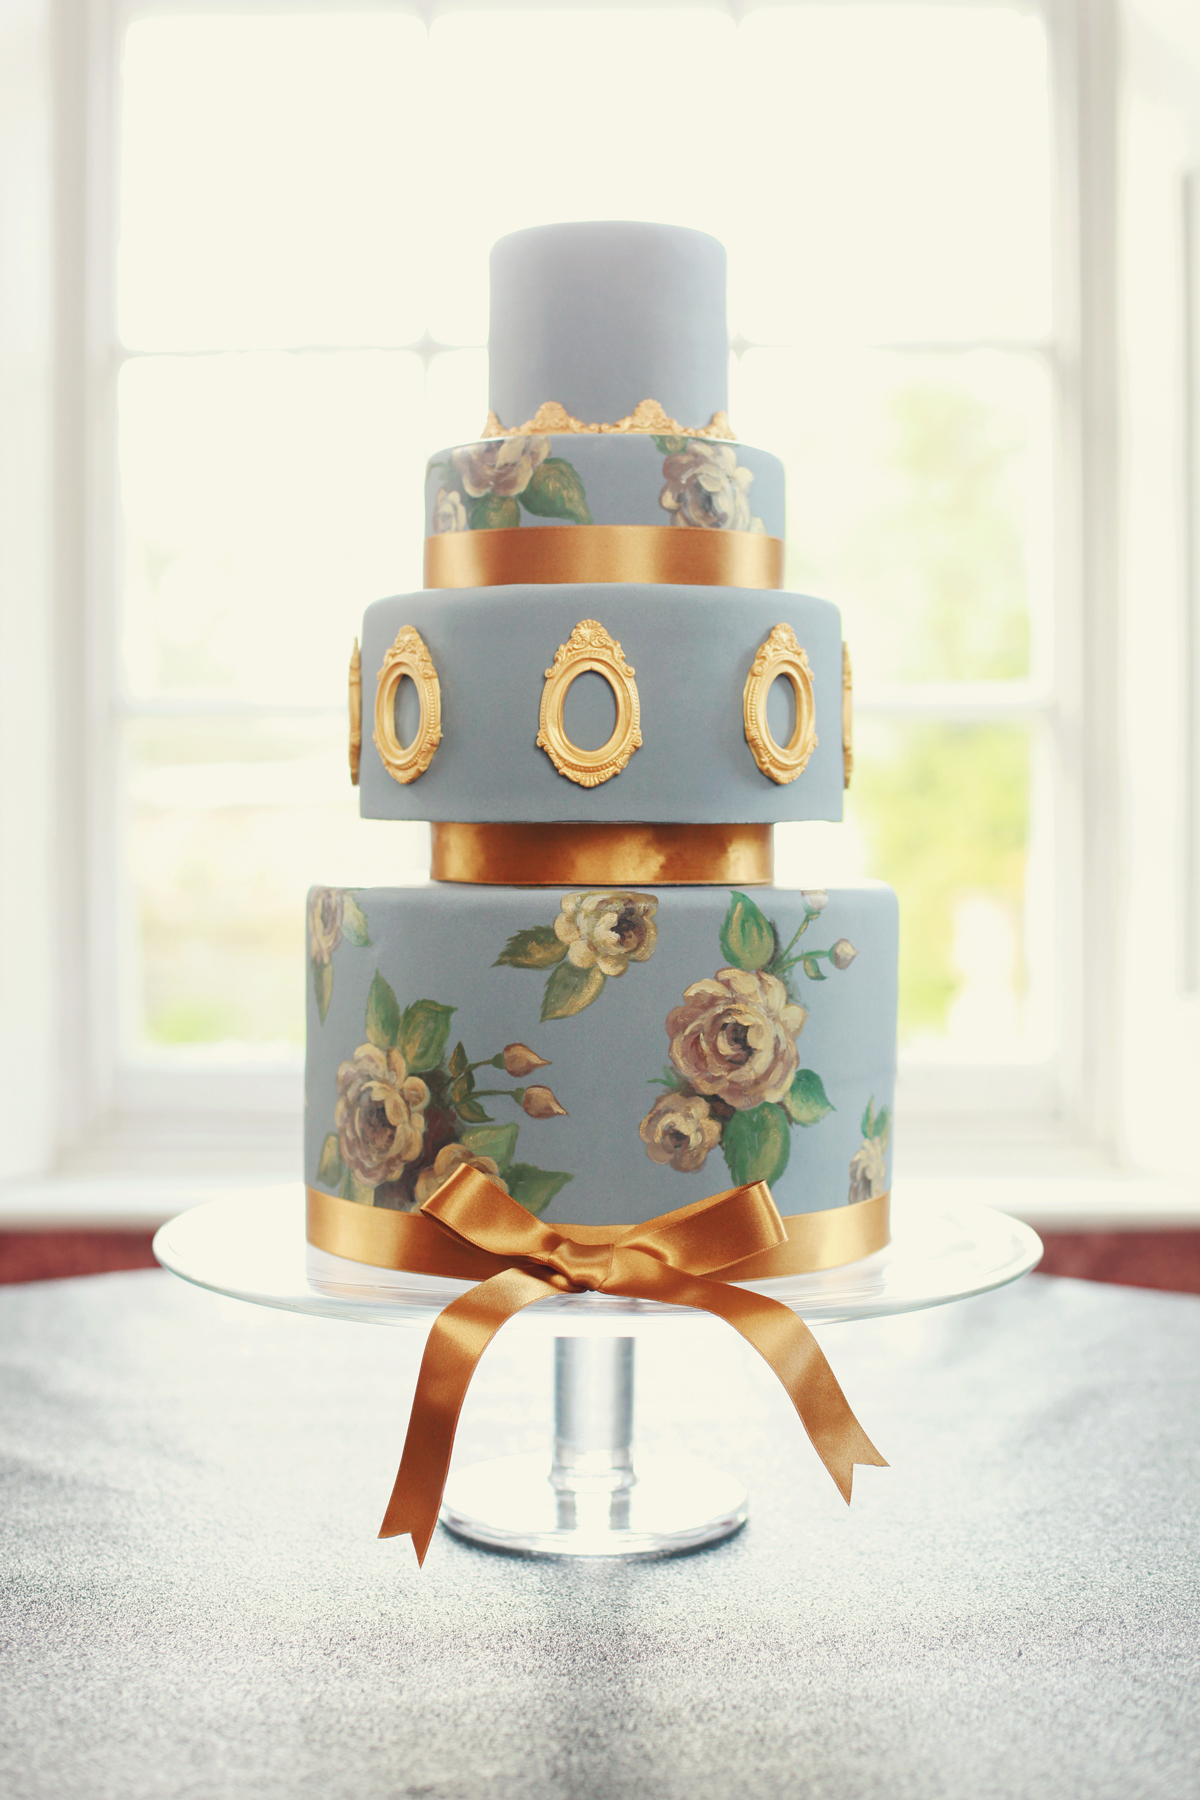 PEWTER AND GOLD  A pewter and gold wedding cake with hand painted roses and moulded gold frames. I love a statement cake with a dramatic coloured background!